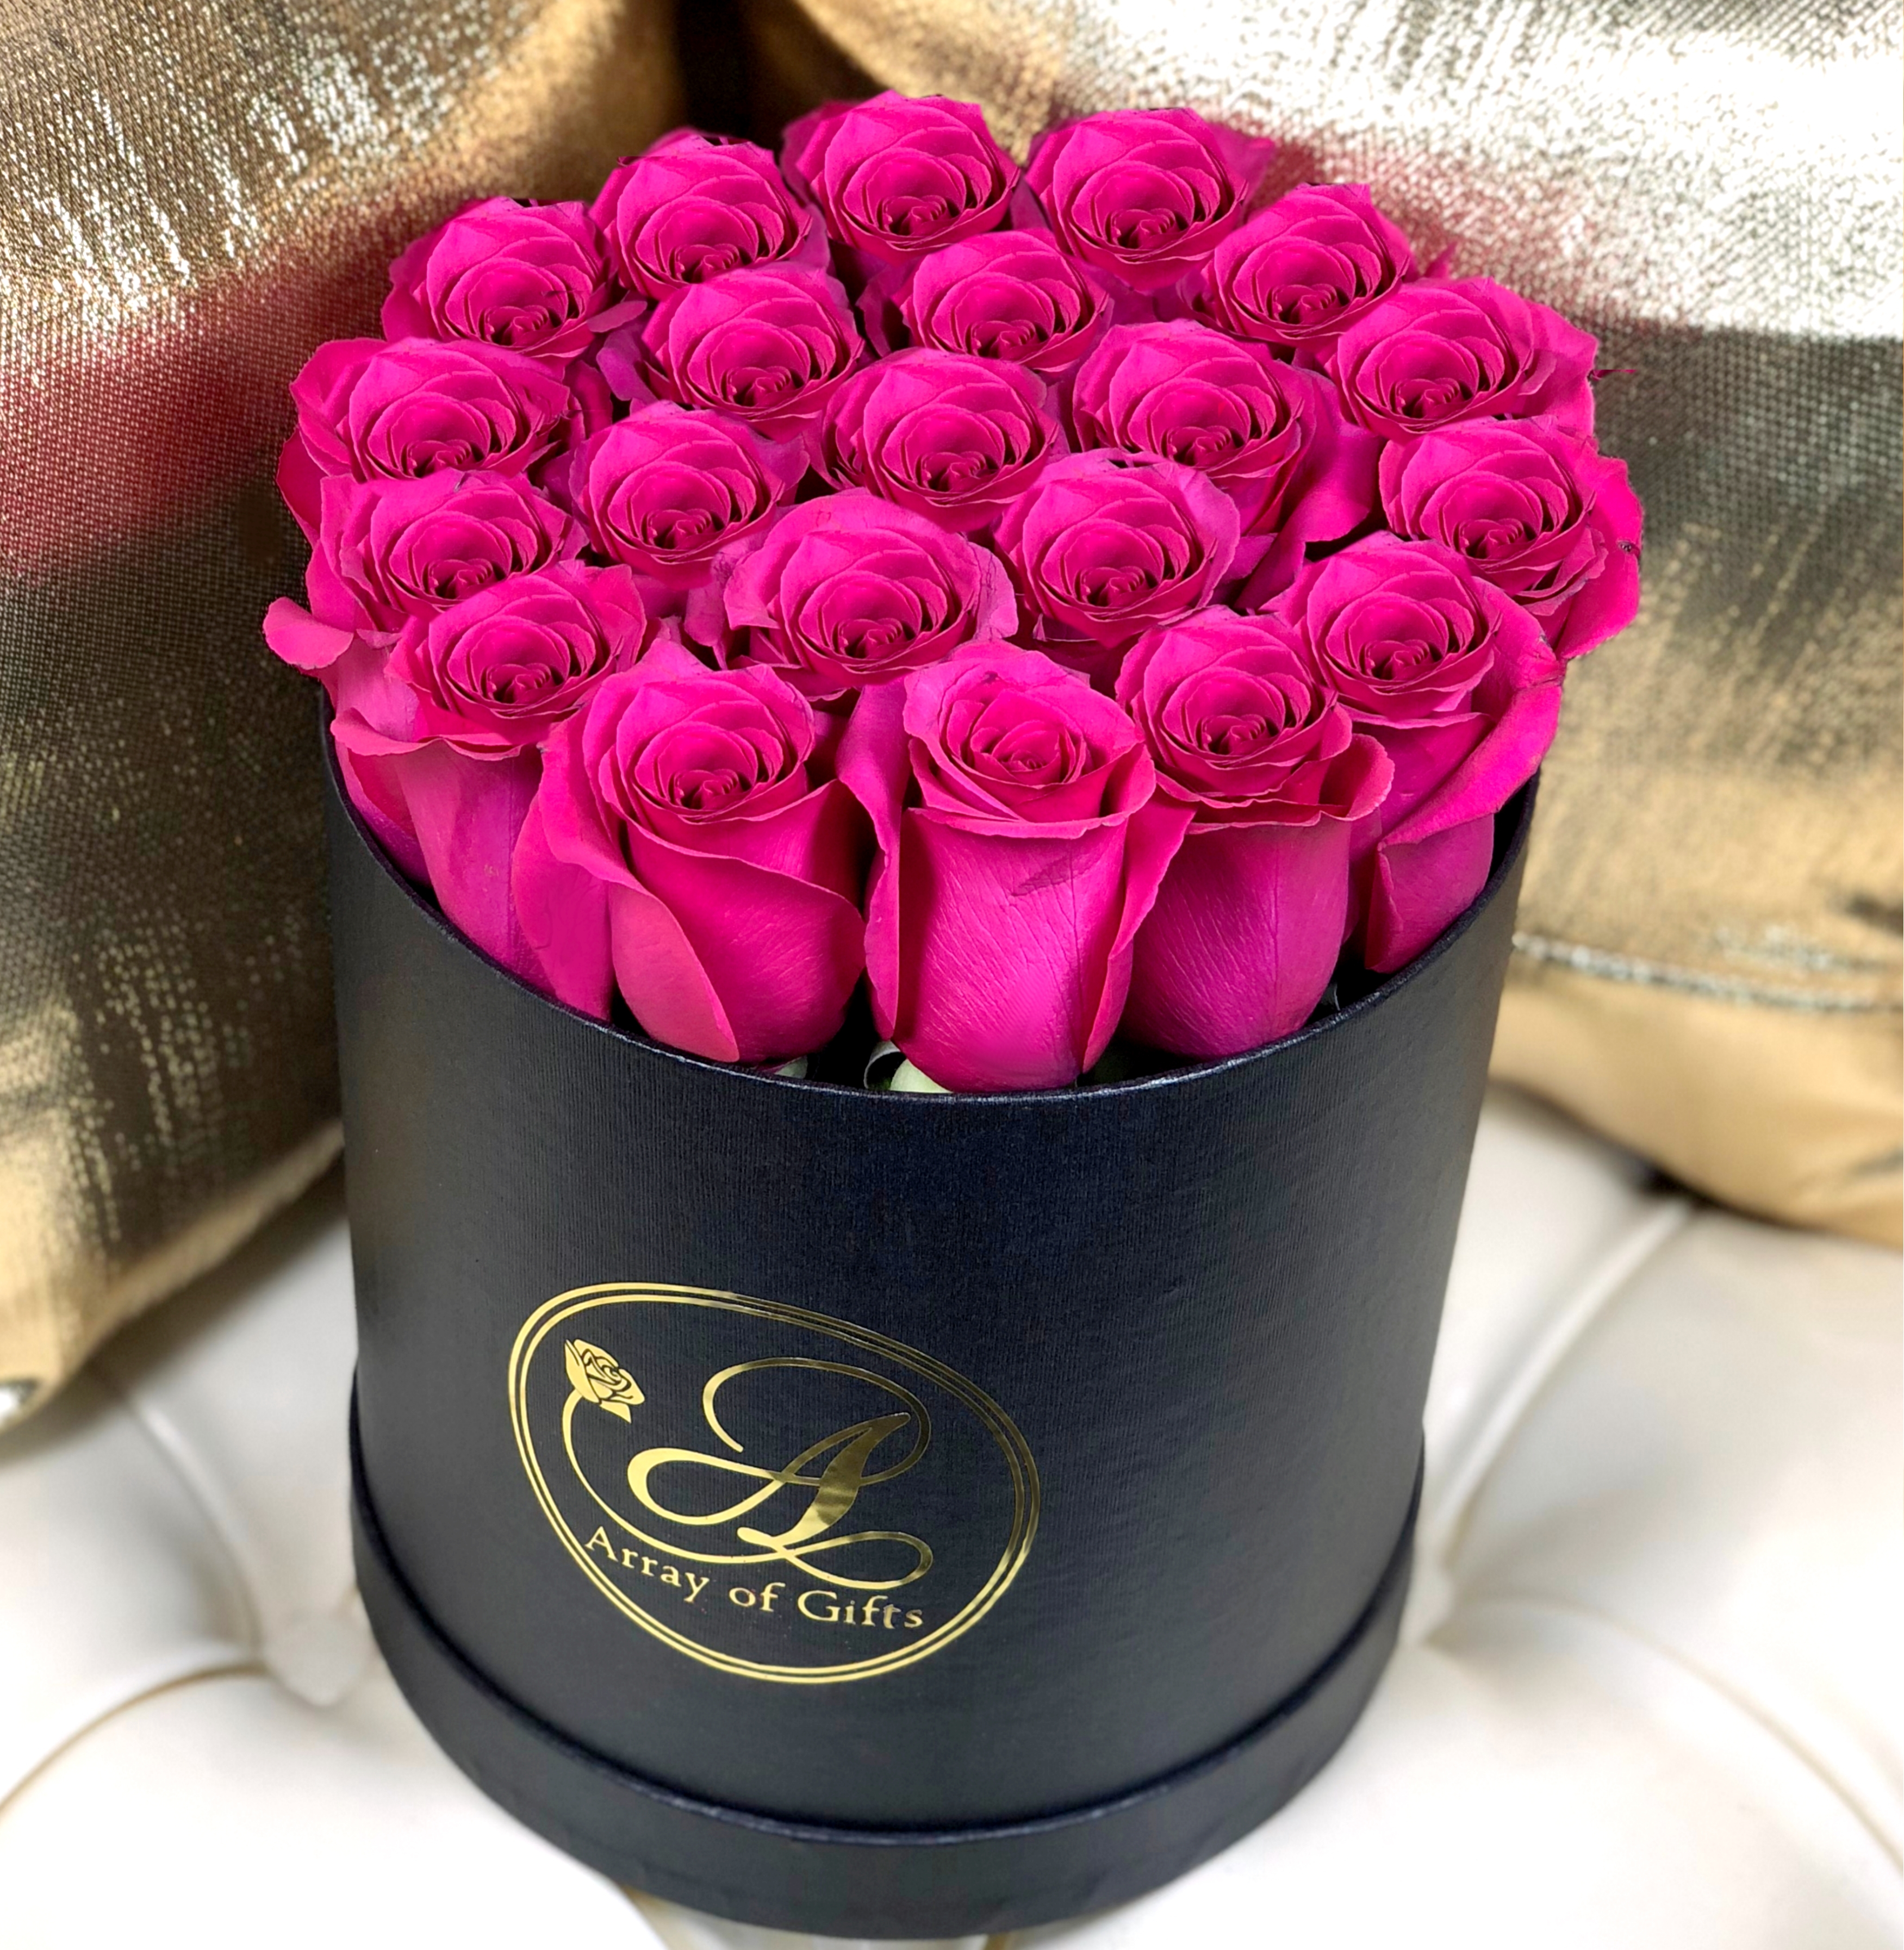 Round Black Box With Hot Pink Roses Array Of Gifts Luxury Flower Houston Texas